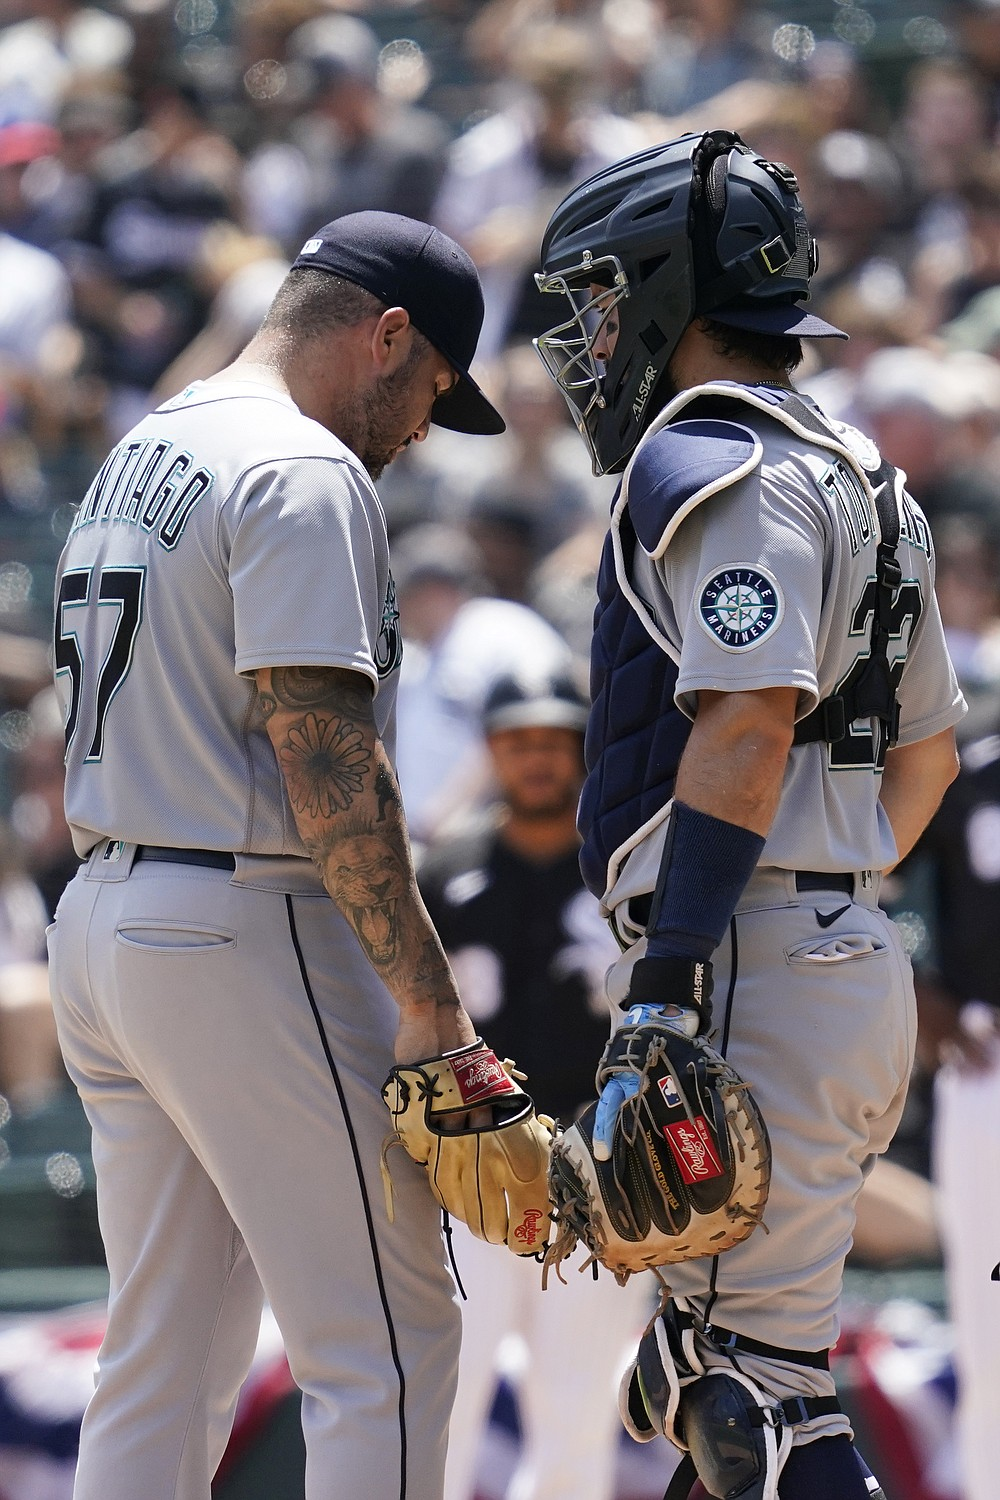 Seattle Mariners catcher Luis Torrens, right, talks with relief pitcher Hector Santiago during the fifth inning in the first baseball game of a doubleheader against the Chicago White Sox in Chicago, Sunday, June 27, 2021. (AP Photo/Nam Y. Huh)